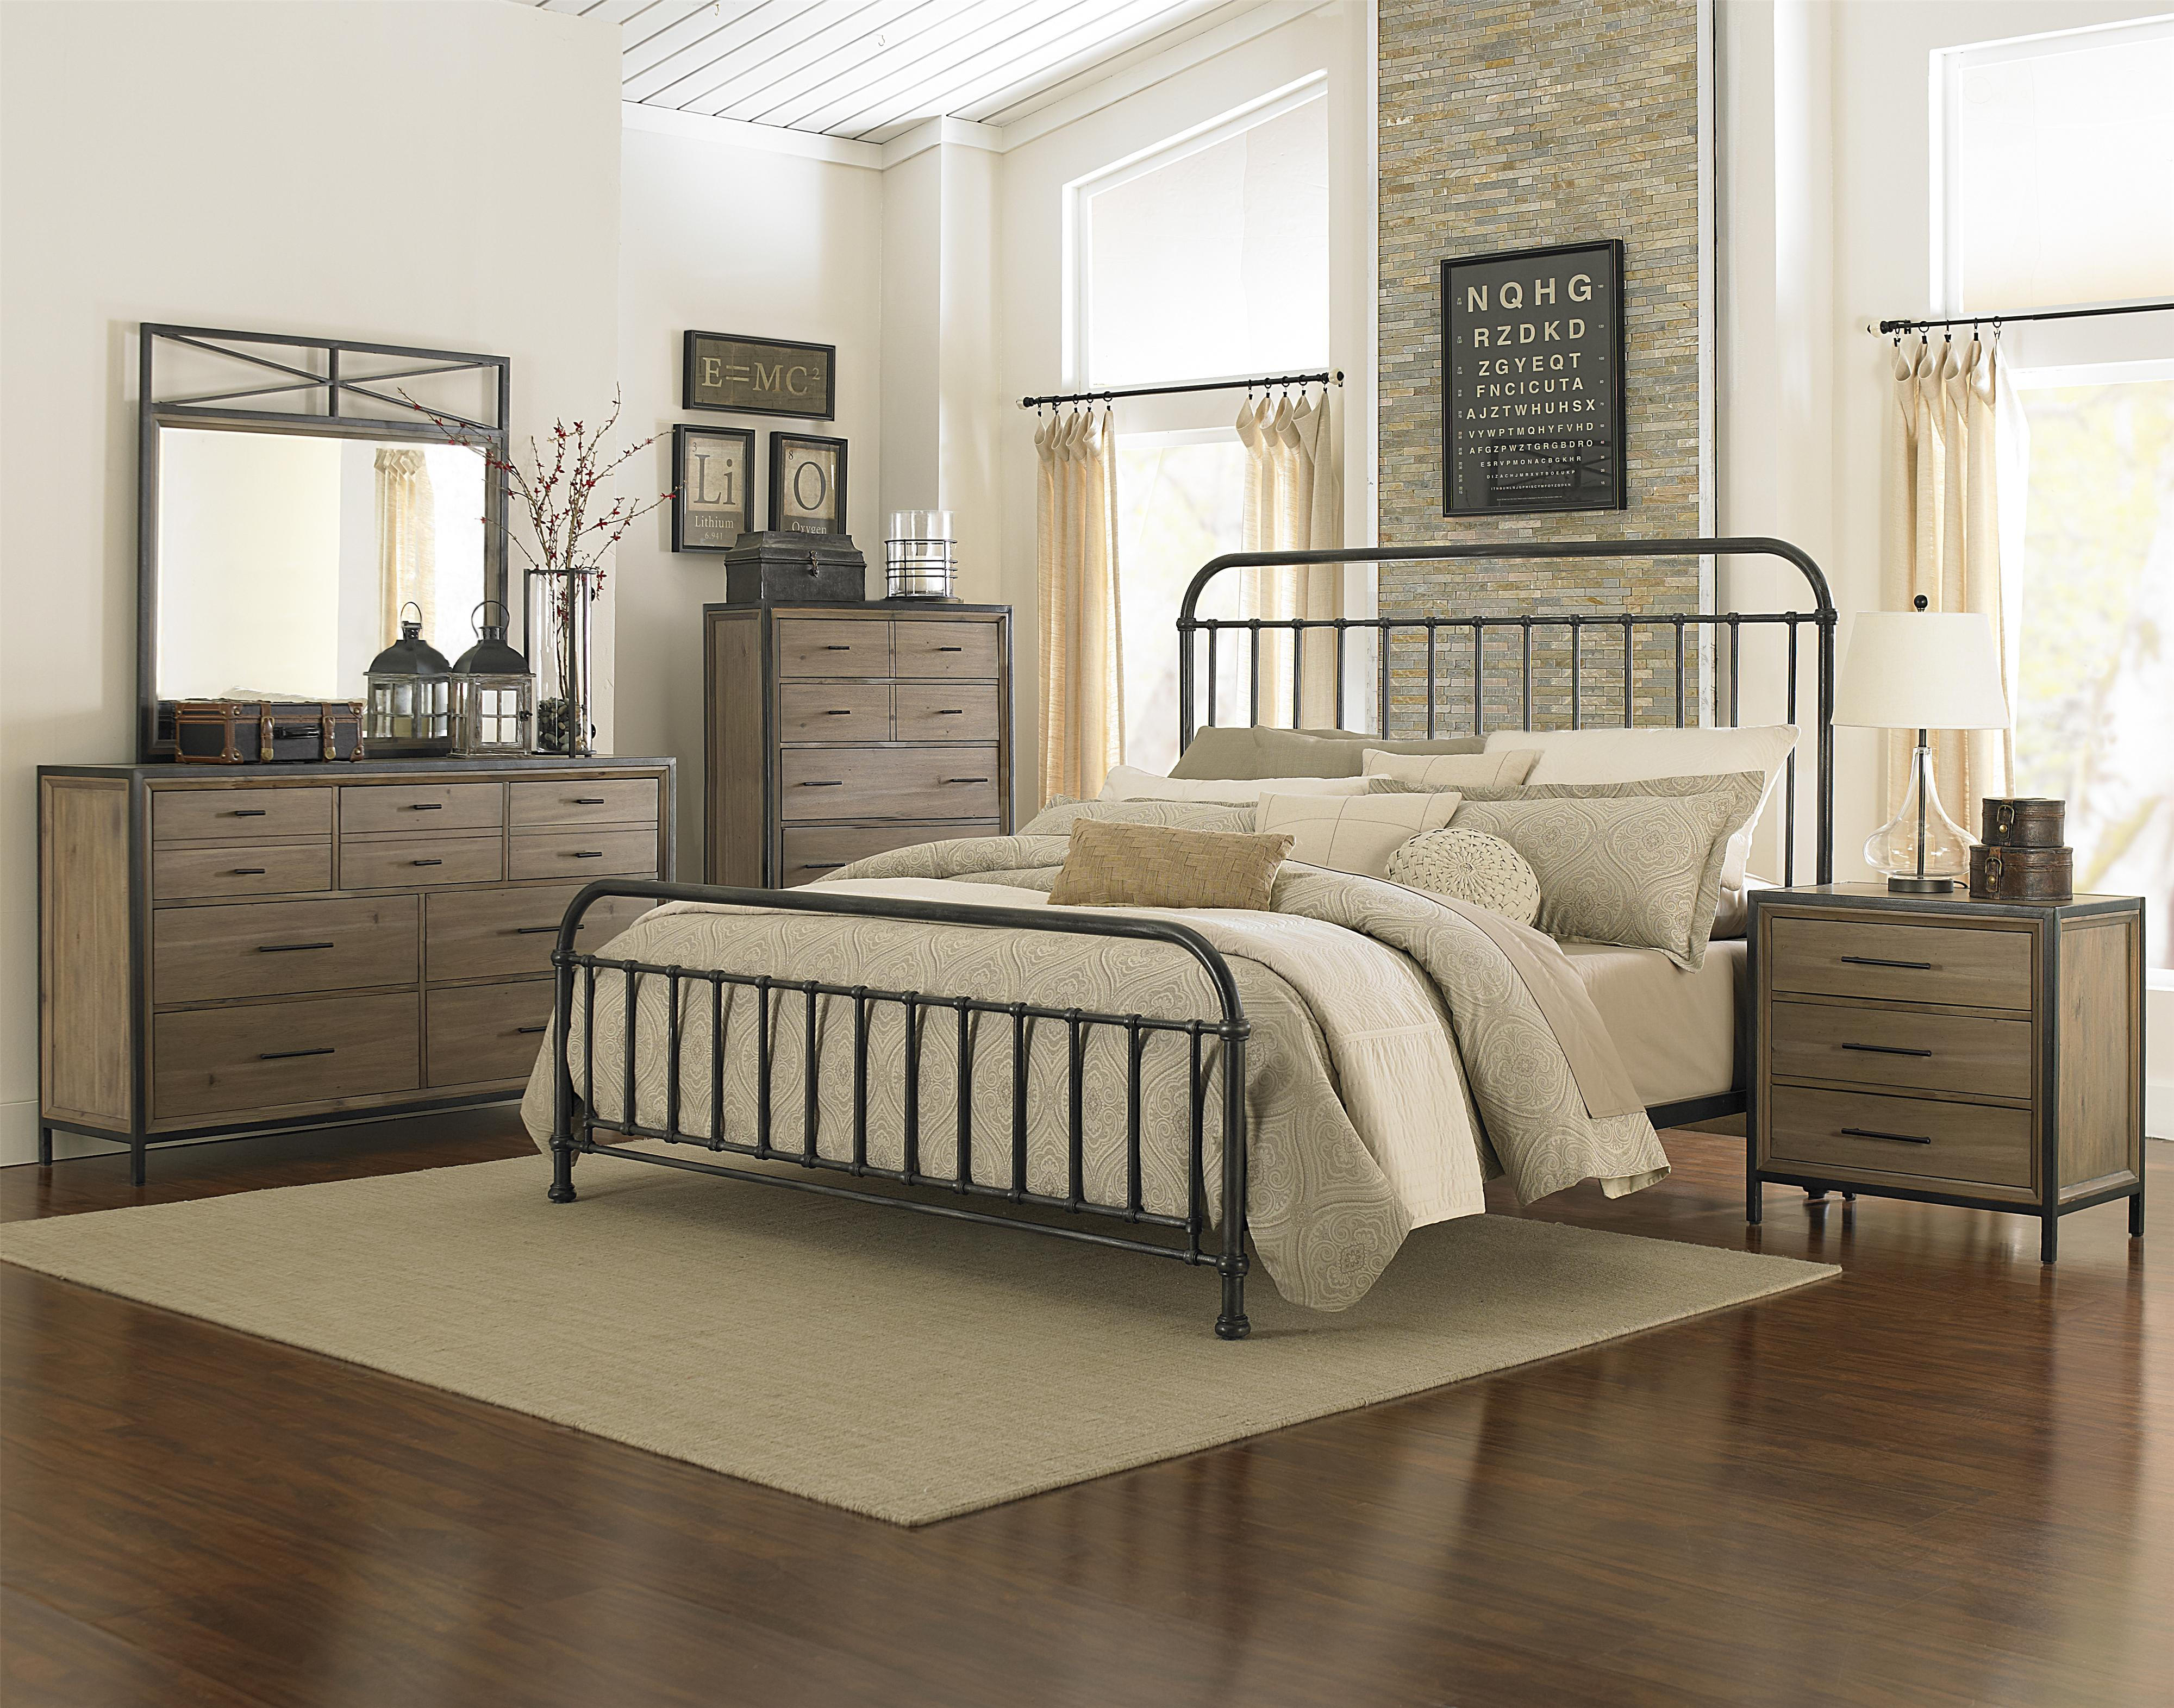 king metal bed frame size with slats